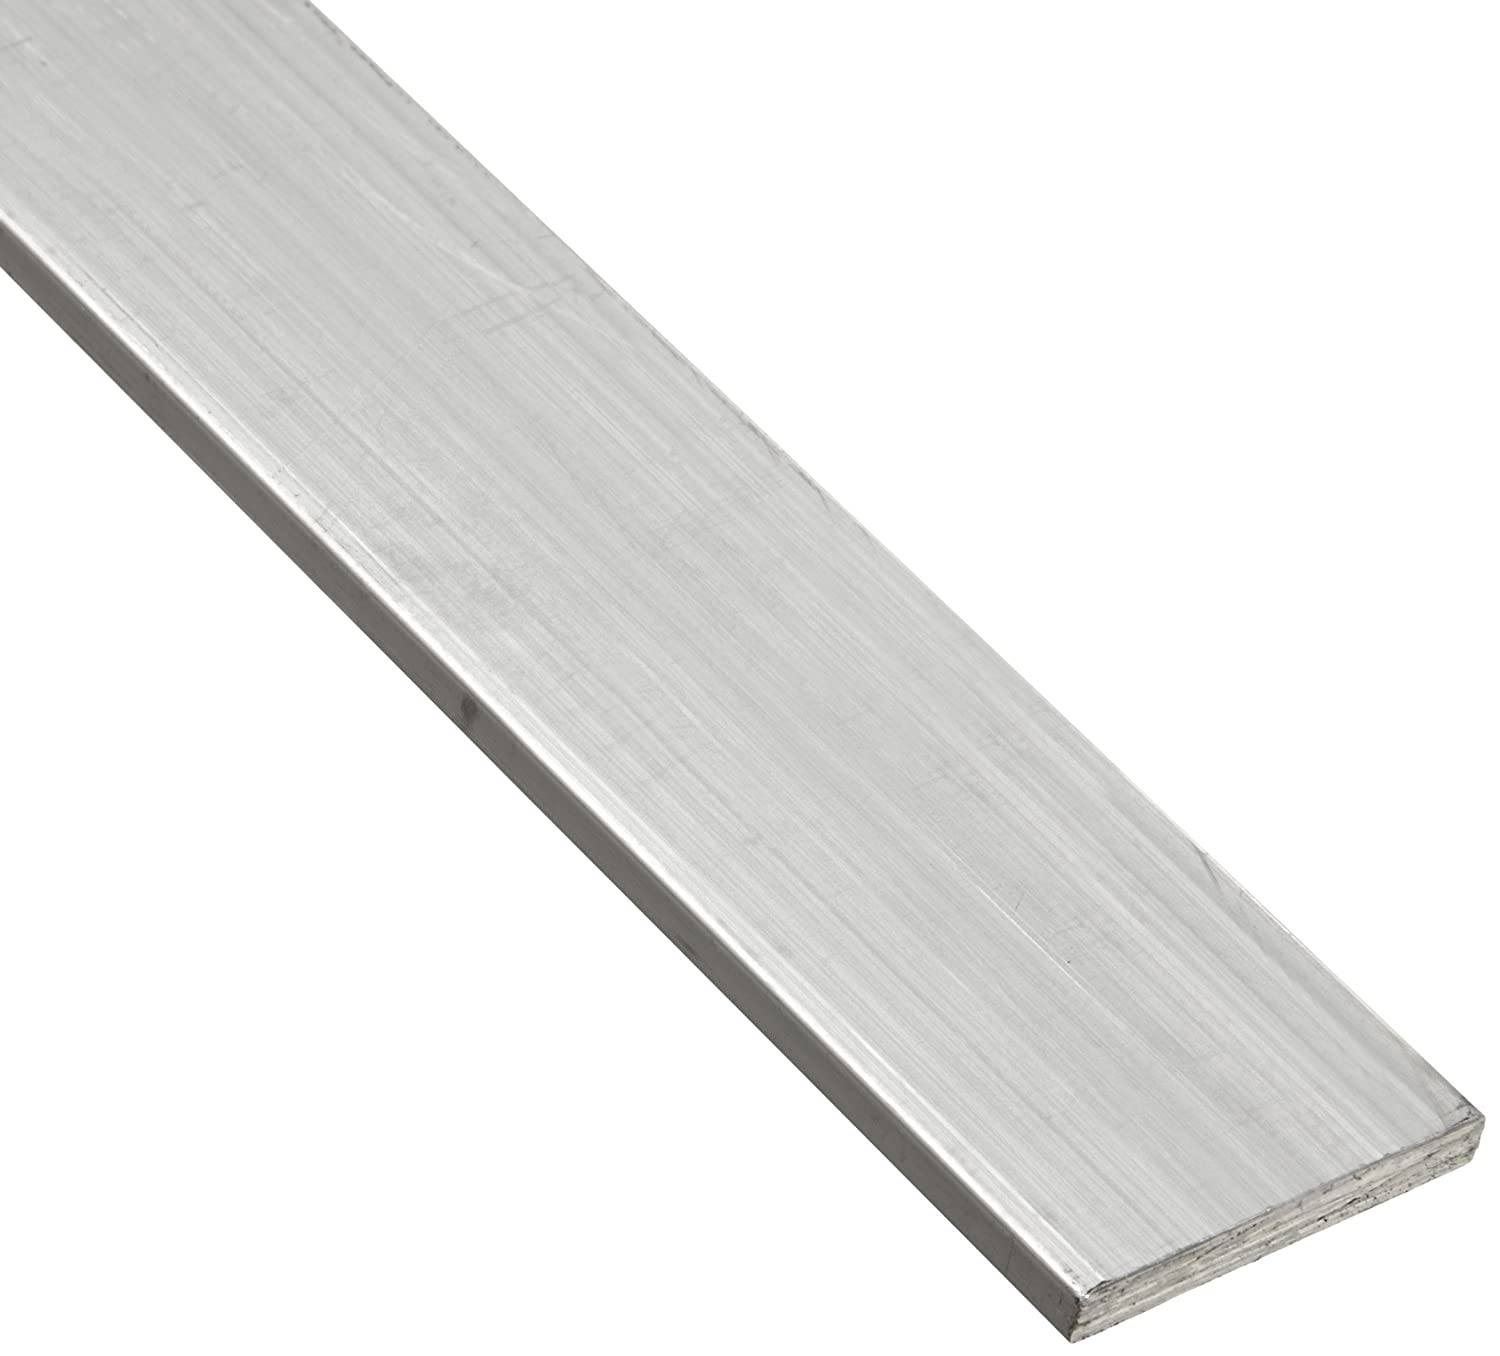 6063 Aluminum Rectangular Bar Unpolished 36 Length 1//2 Thickness 3//4 Width 36 Length Small Parts F63.12.34T52x36 T52 Temper 1//2 Thickness AMS QQ-A-200//9//ASTM B221 Mill 3//4 Width Finish